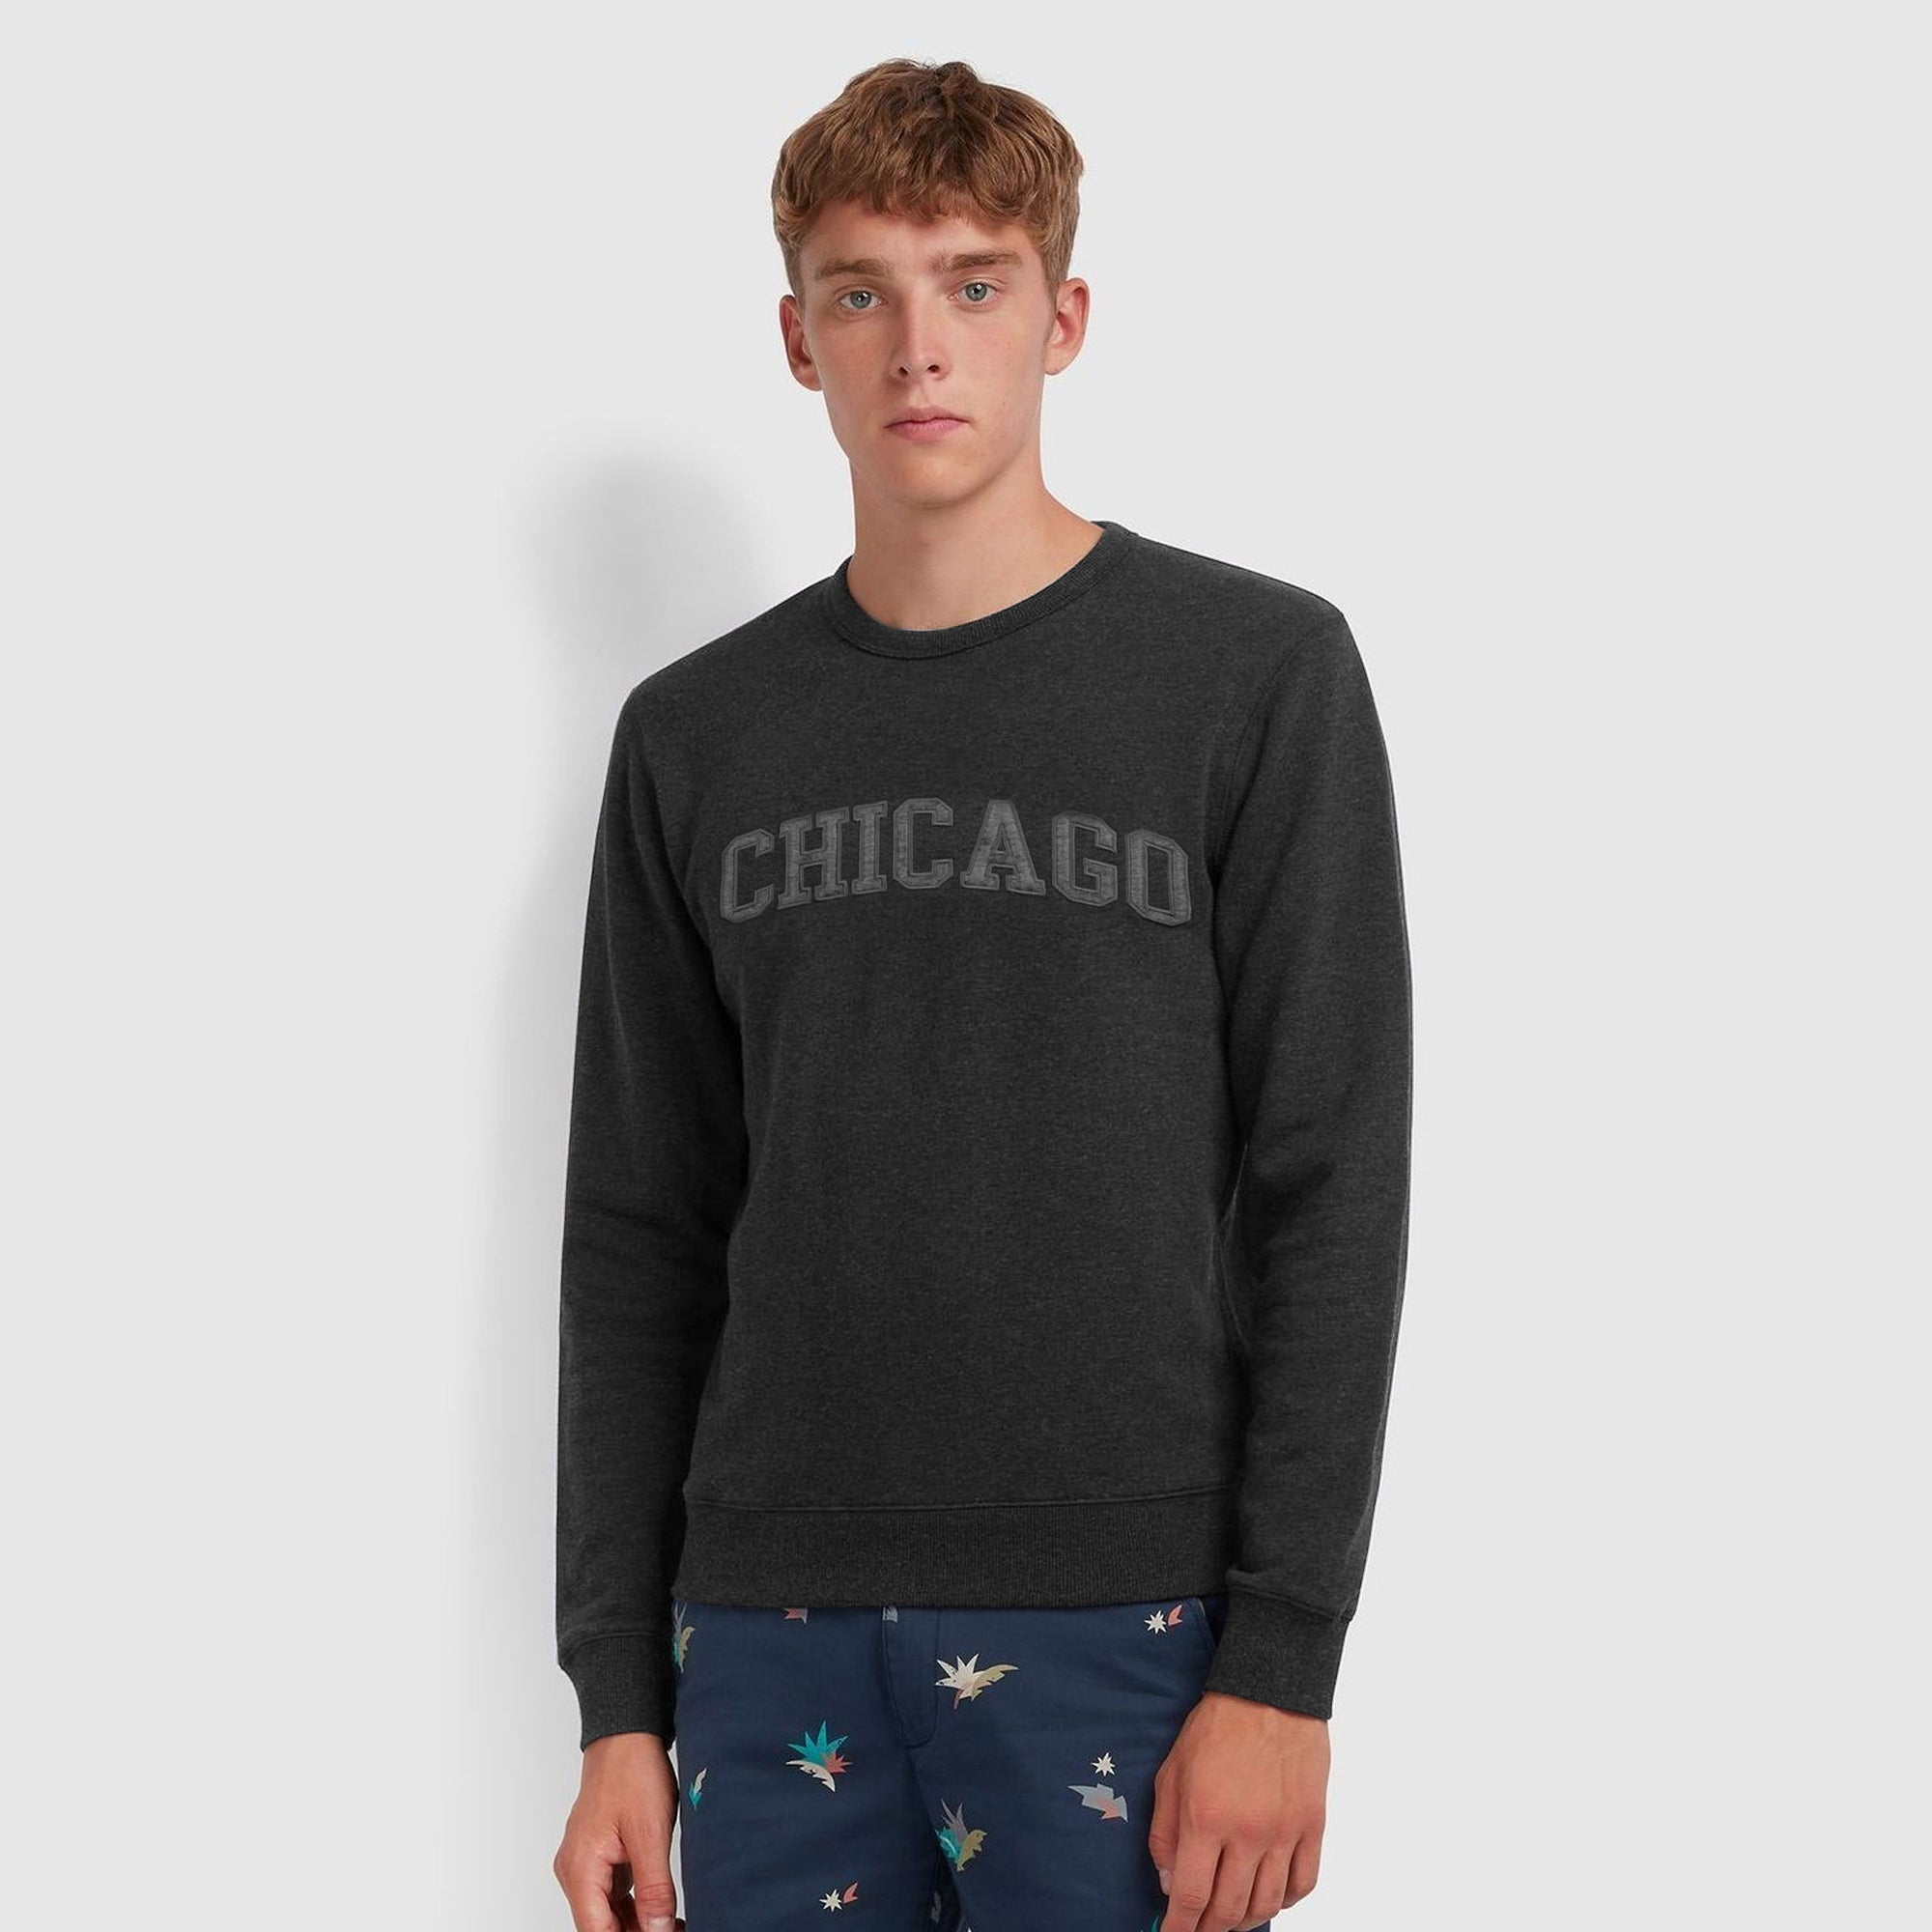 New York Popular Crew Neck Fleece Embroidered Sweatshirt For Men-Charcoal Melange-SP1127